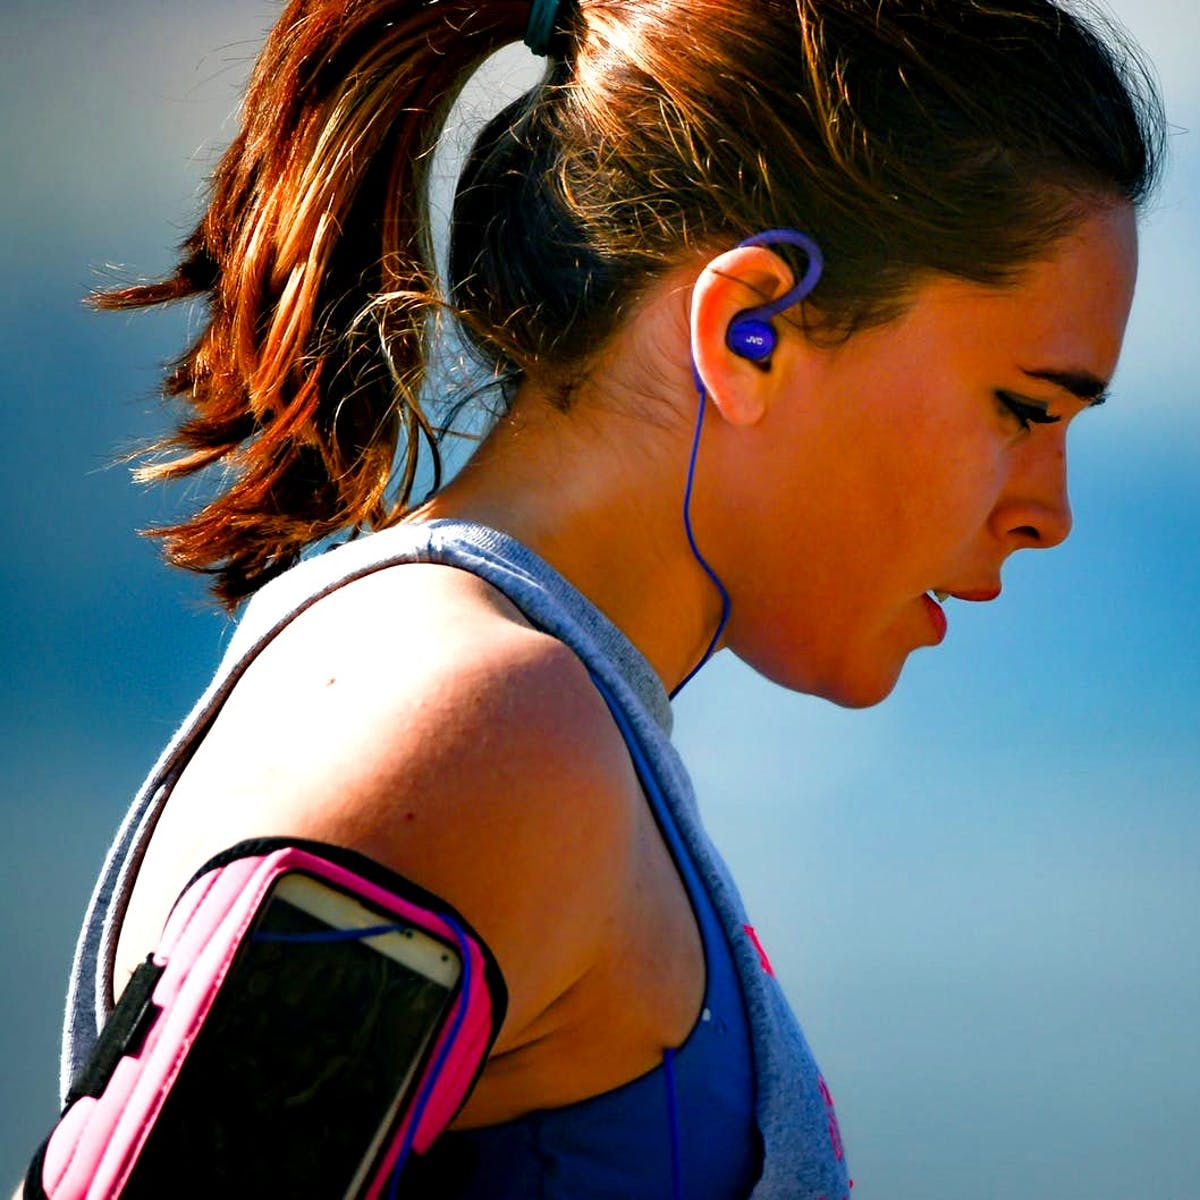 The Right Motivational Playlist Could Have a Powerful Effect on High-Intensity Workouts